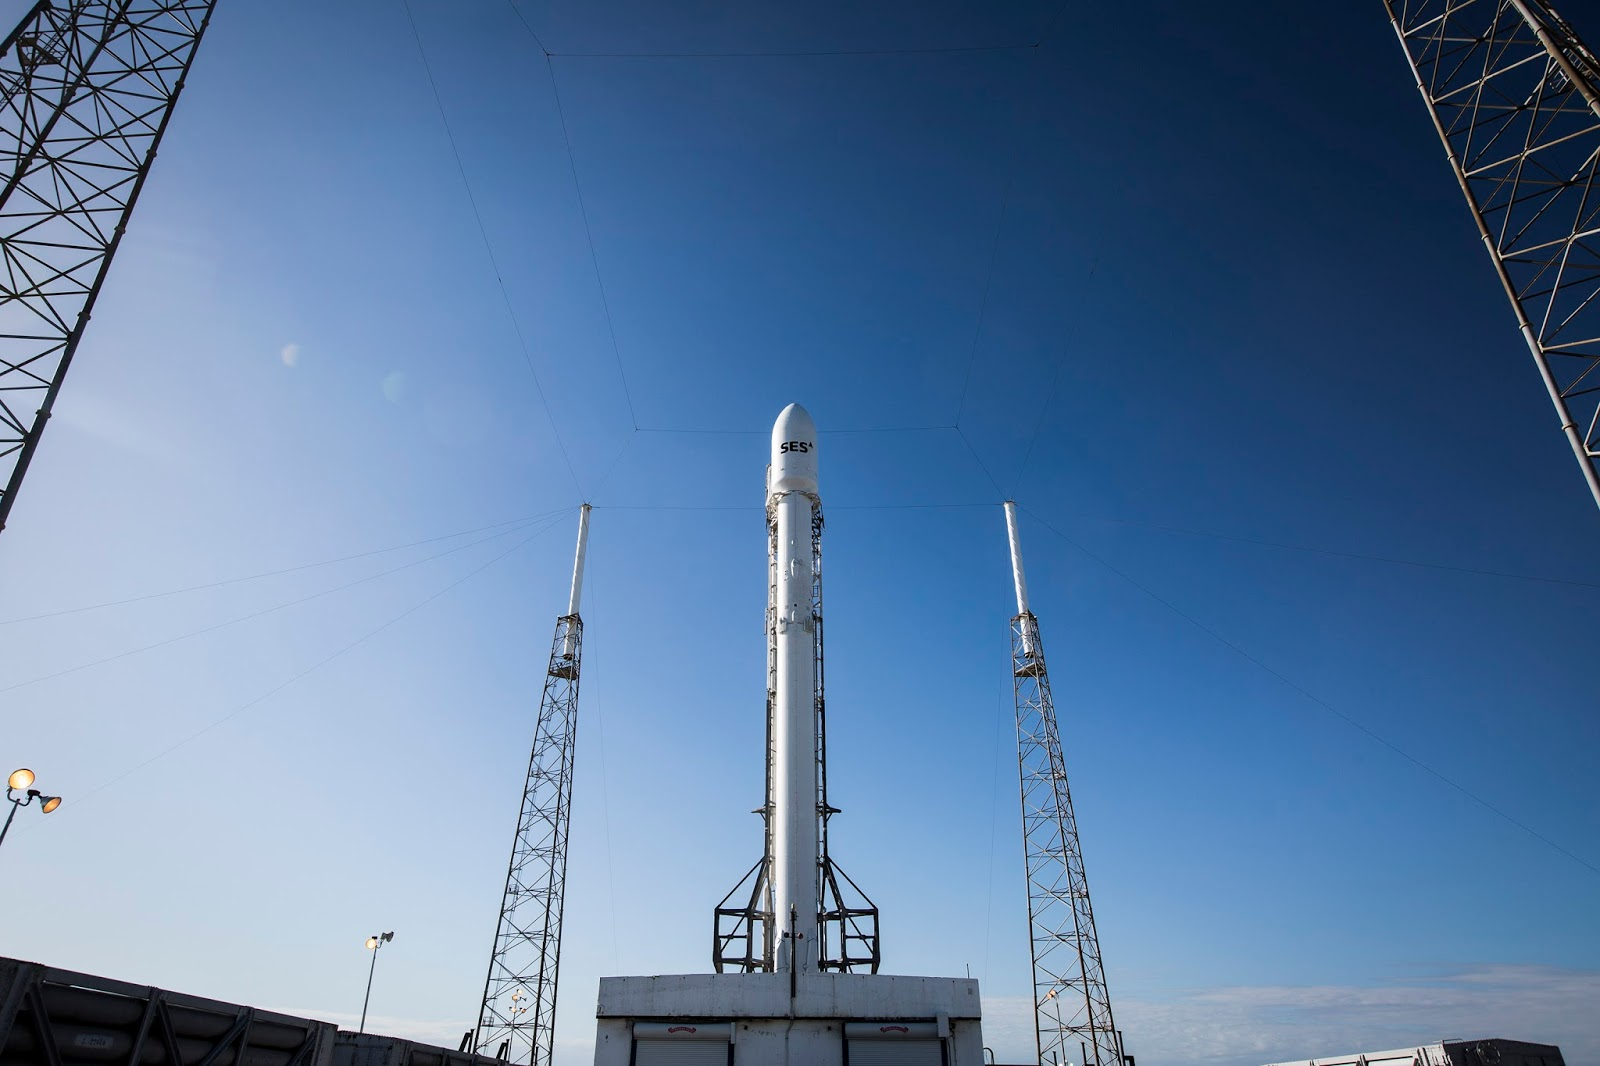 spacex florida - photo #5